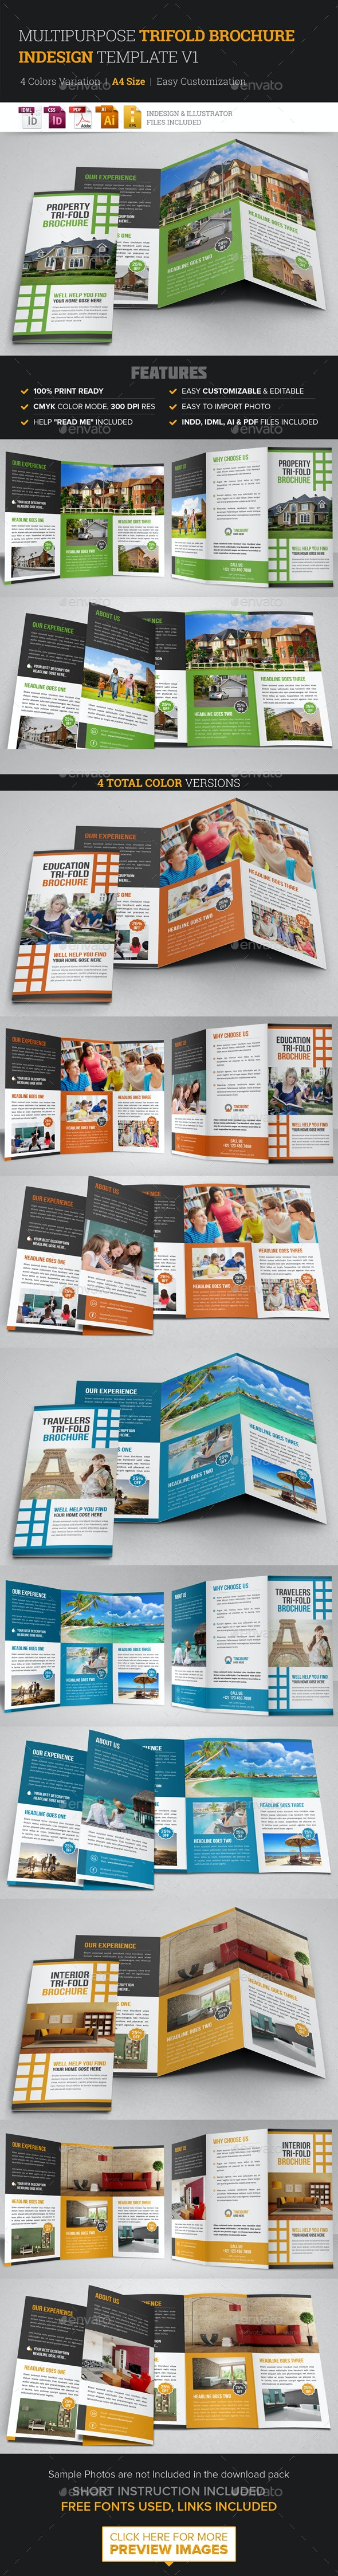 Multipurpose Trifold Brochure Indesign v1 - Corporate Brochures